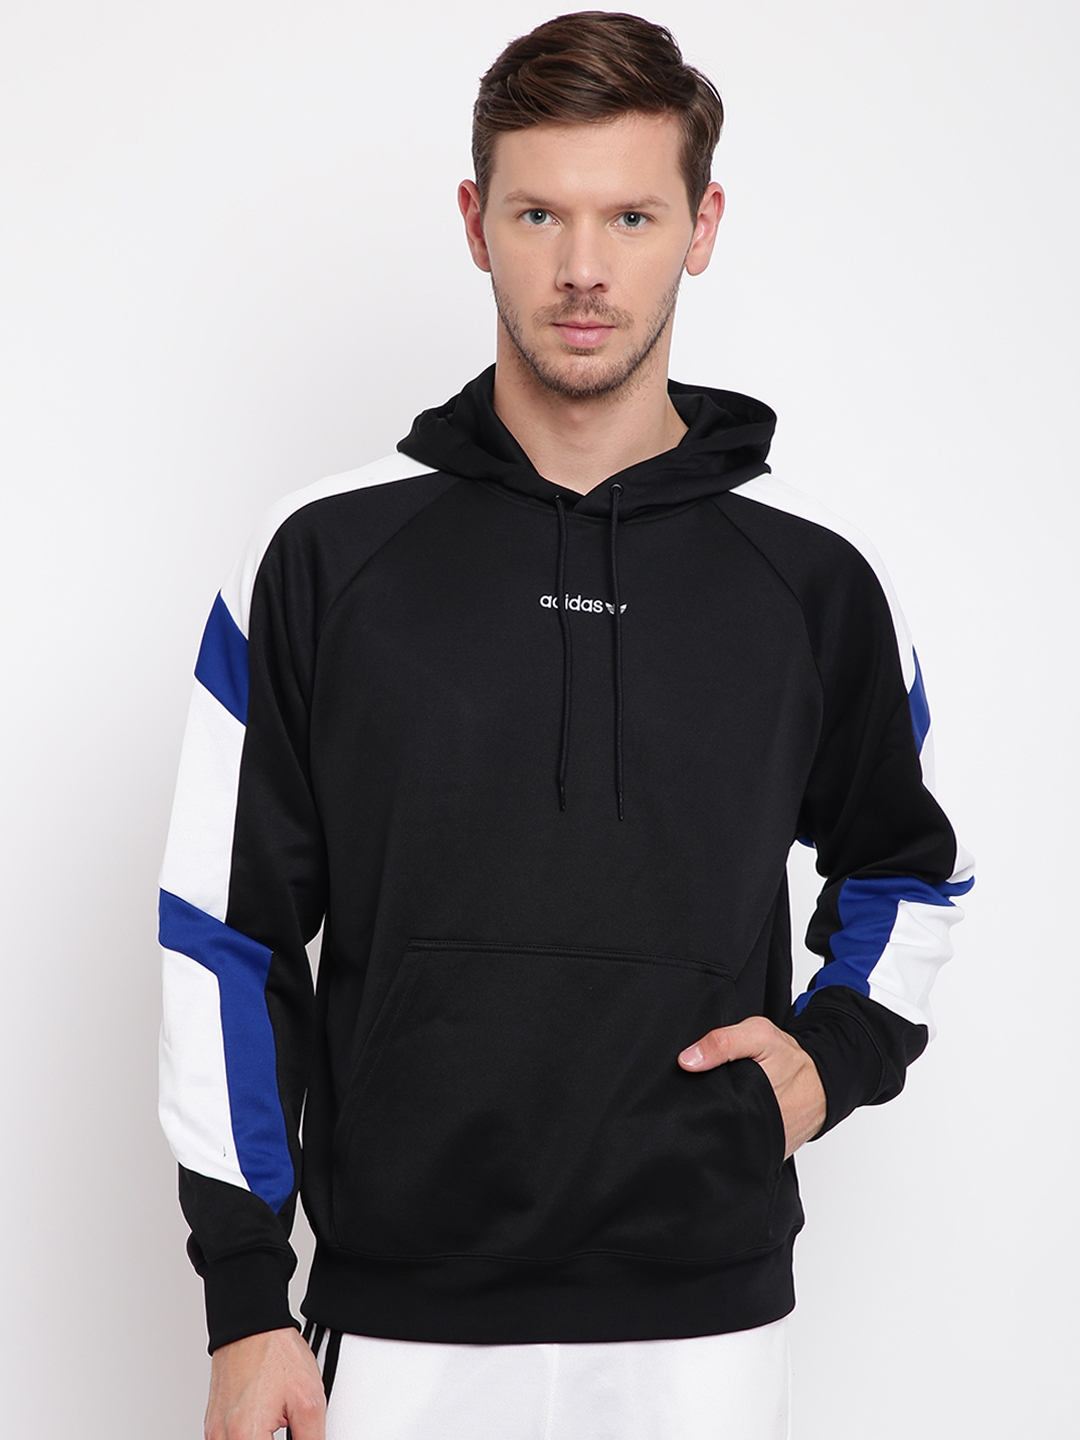 ccde464328f3 Buy ADIDAS Originals Men Black EQT Block Hoody Sweatshirt ...